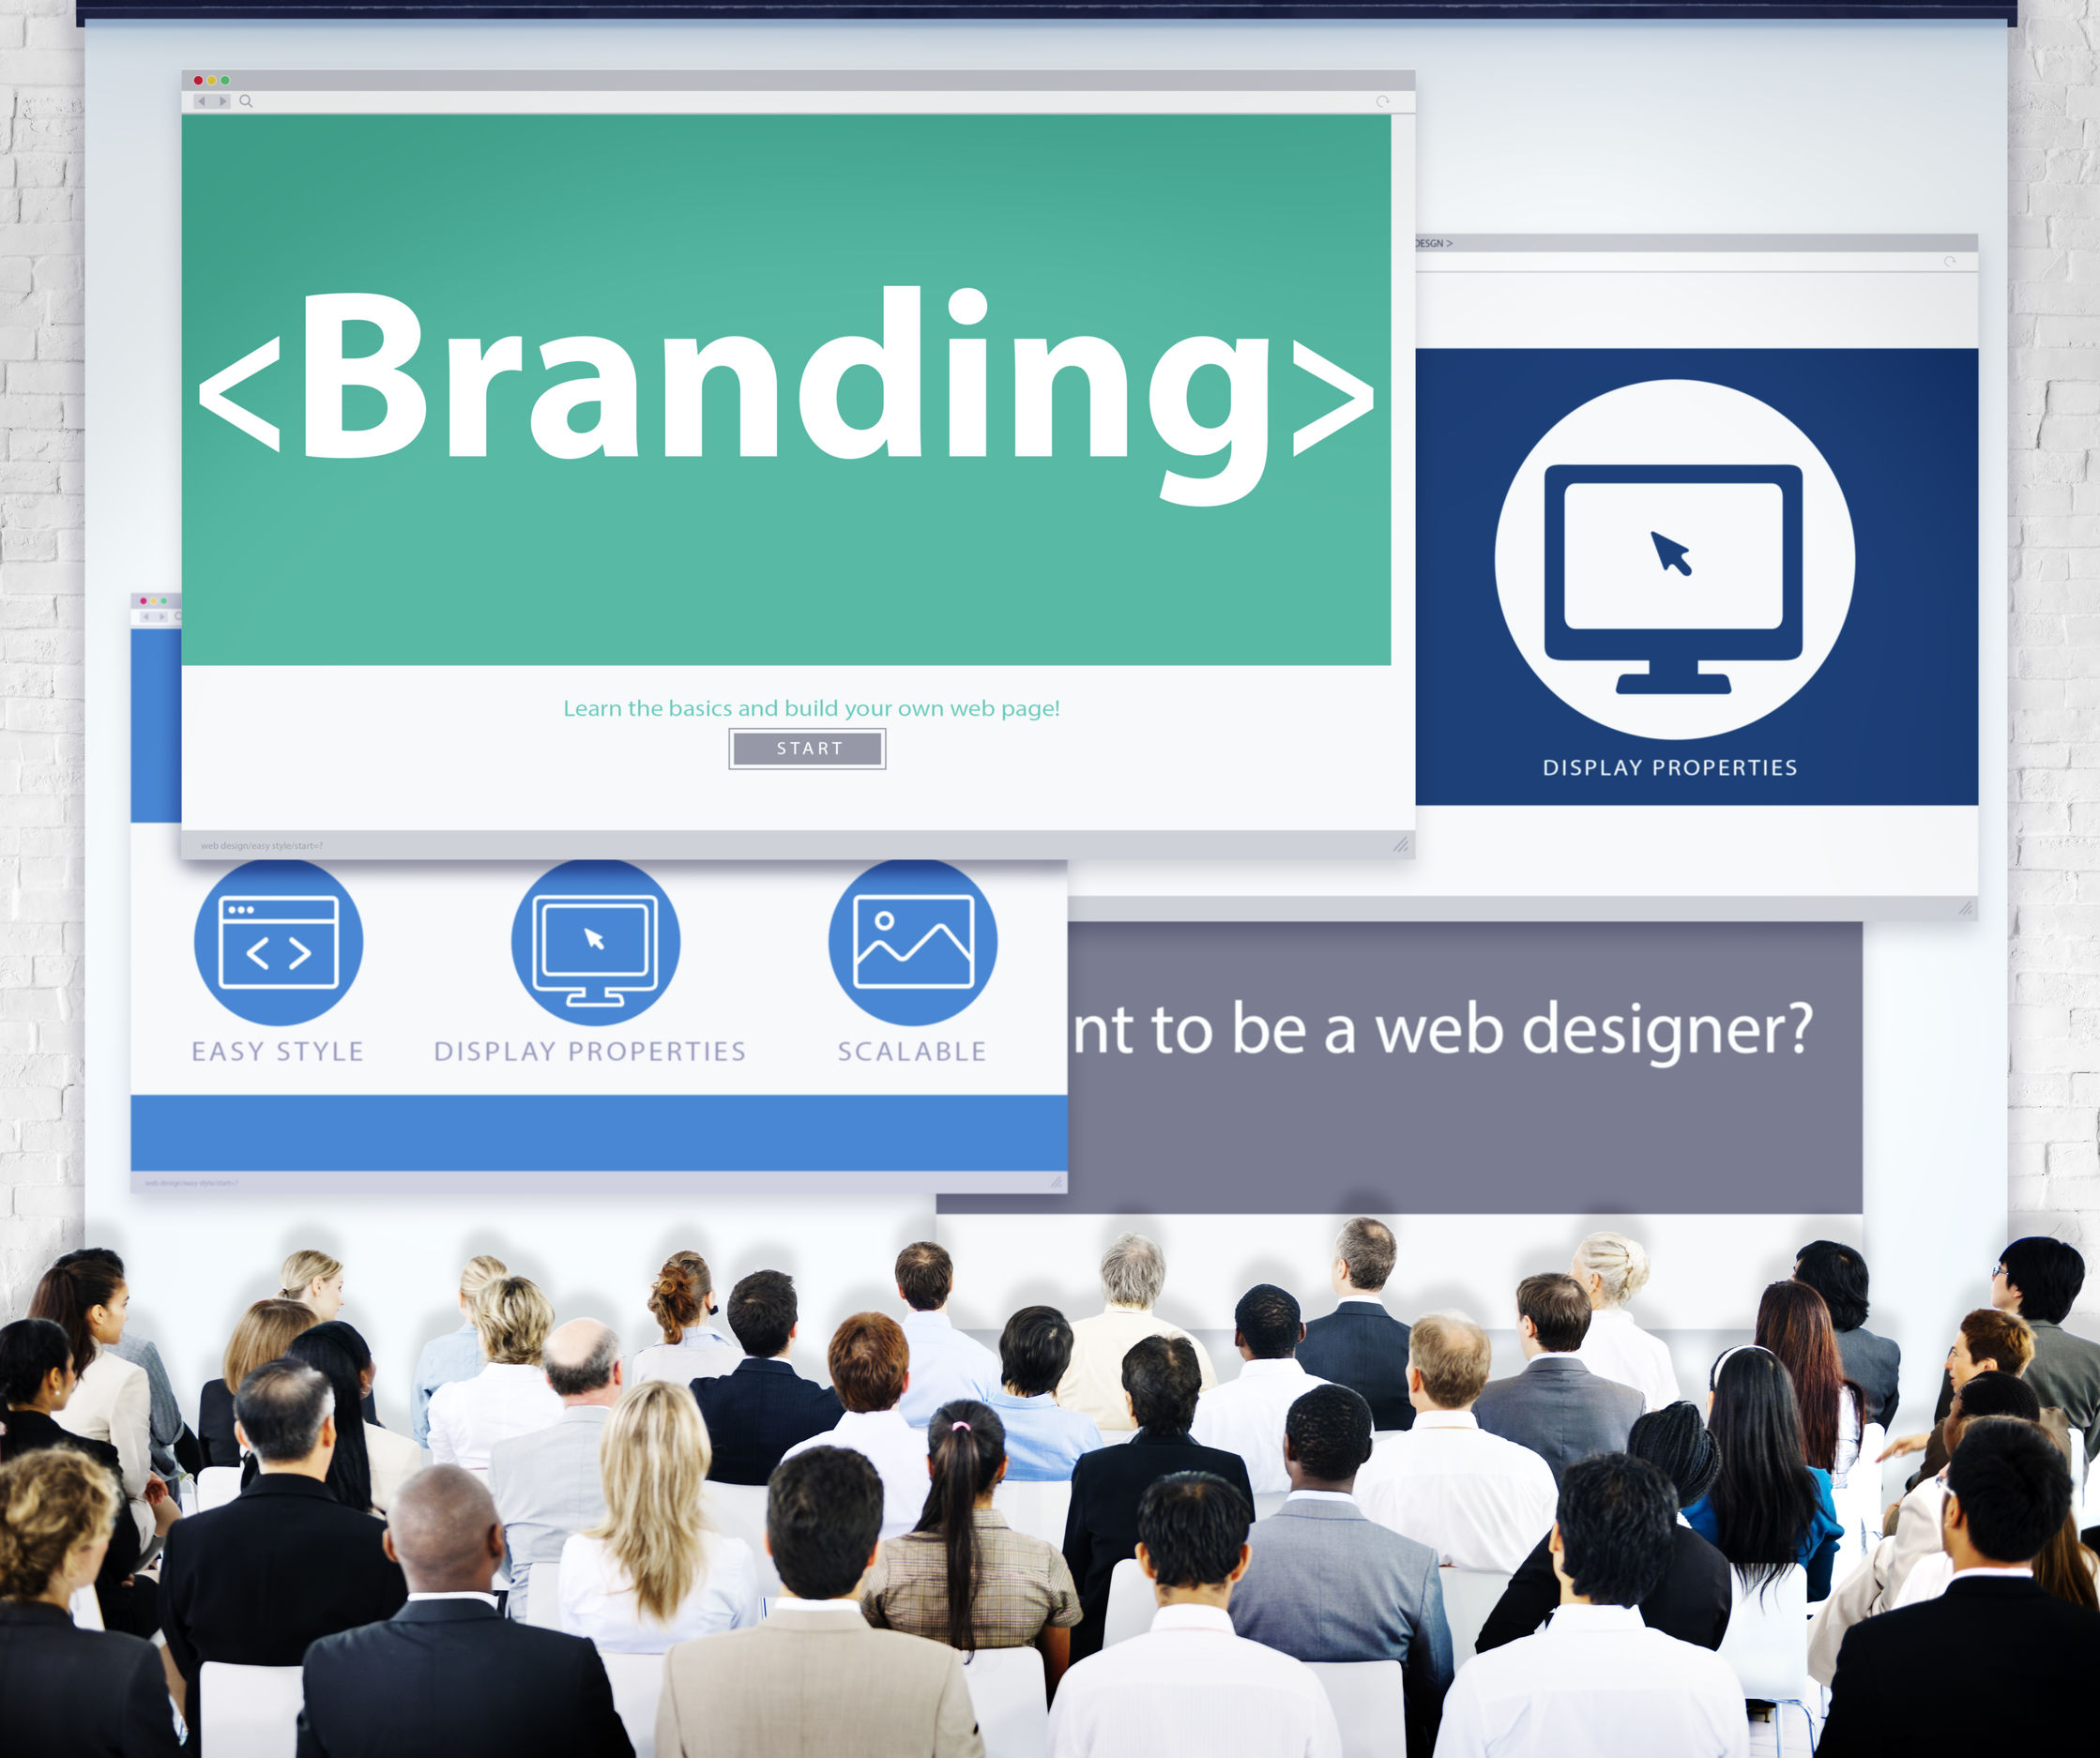 Branding Your Website to Increase Your Leads